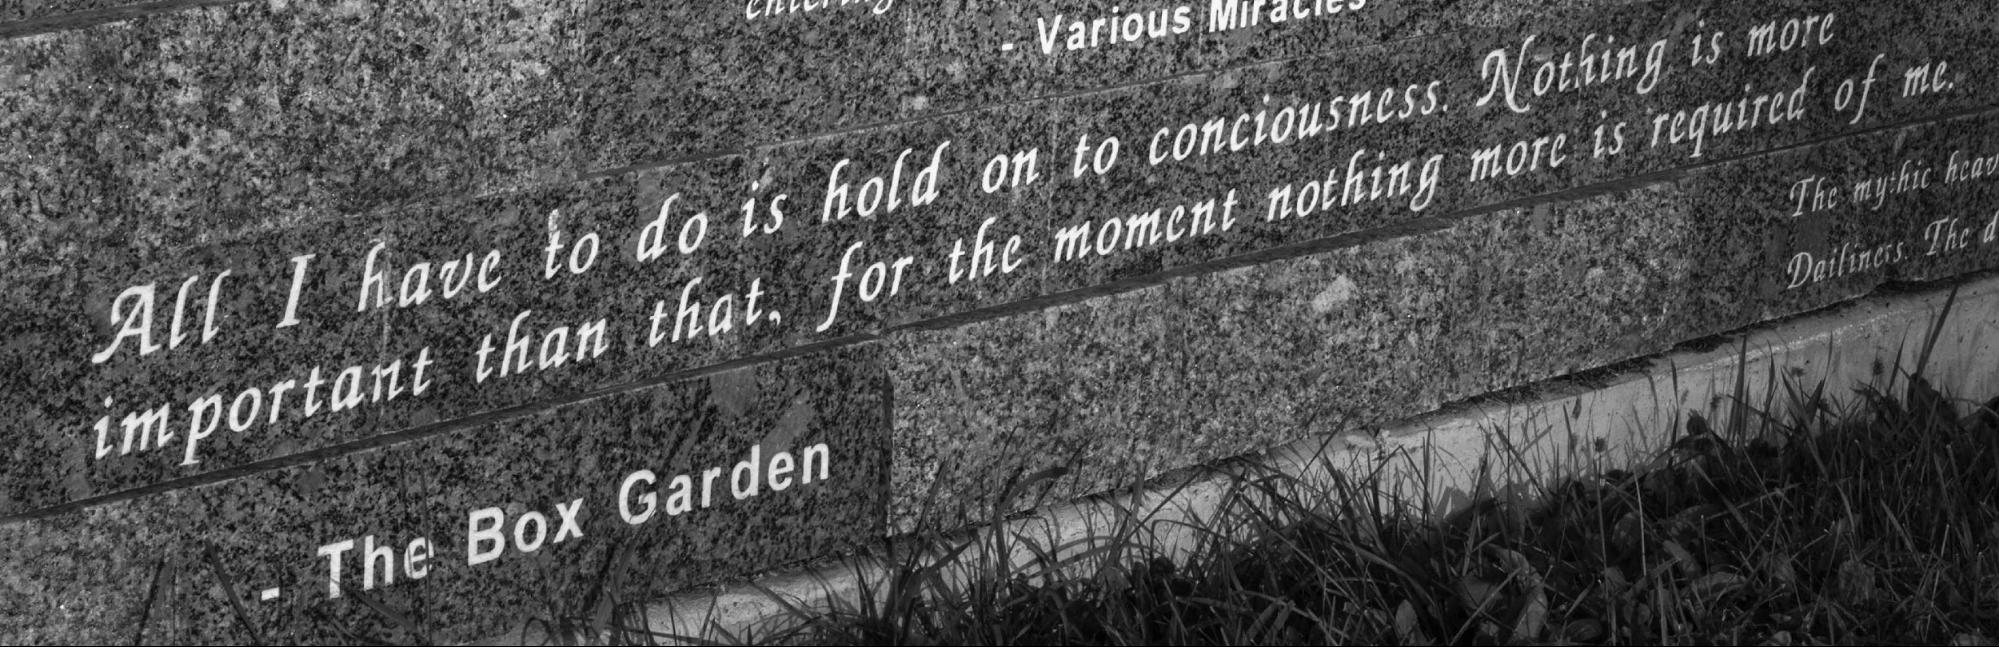 The entrance to the labyrinth showcases two stone walls engraved with quotes taken from Carol Shields' various books and interviews.